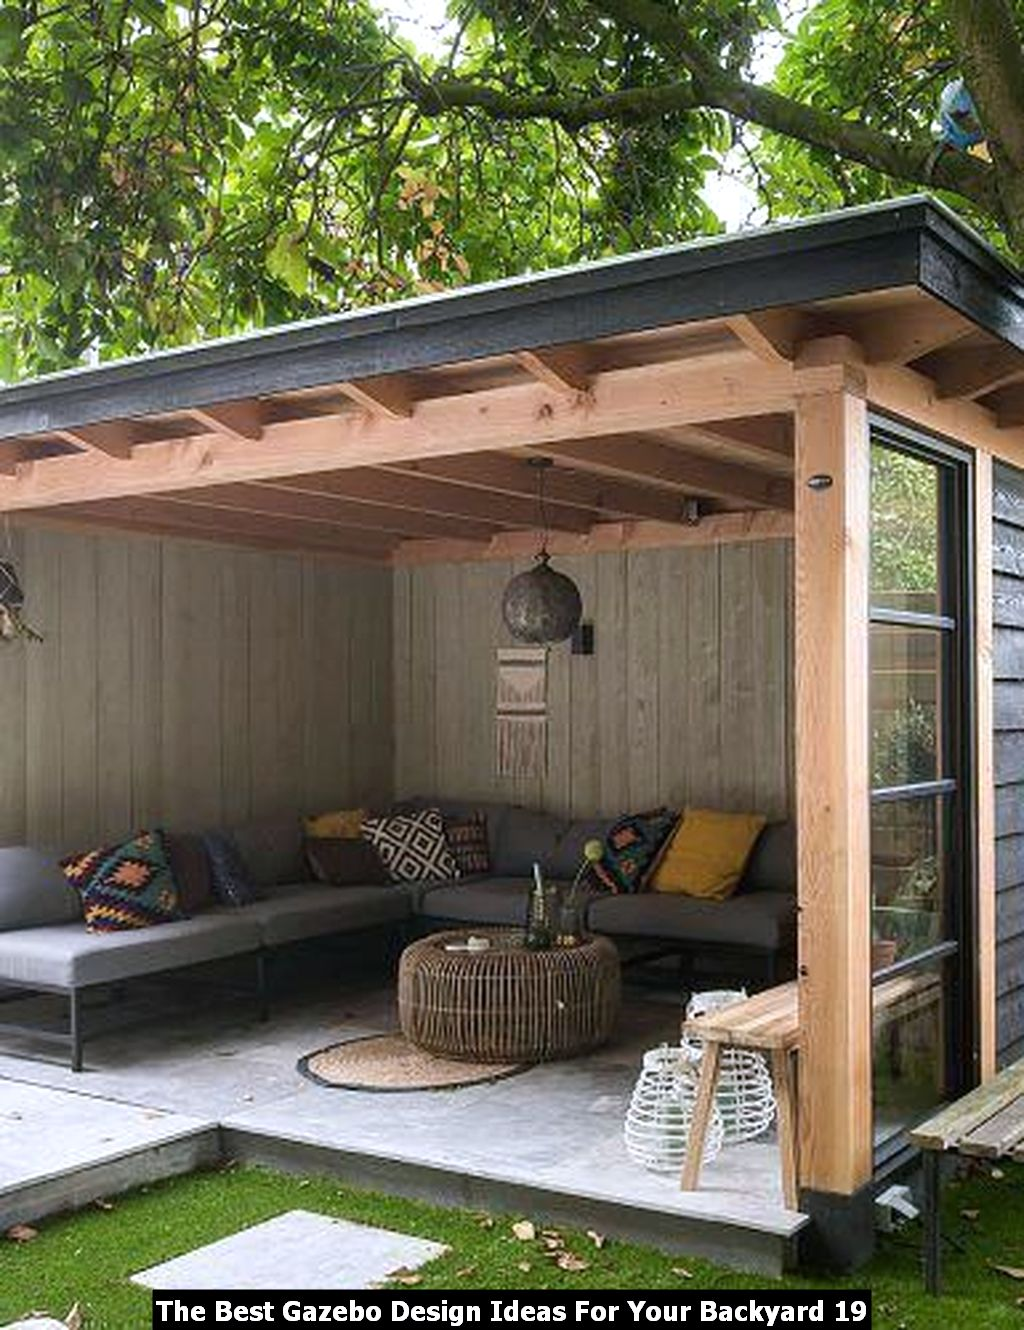 The Best Gazebo Design Ideas For Your Backyard 19